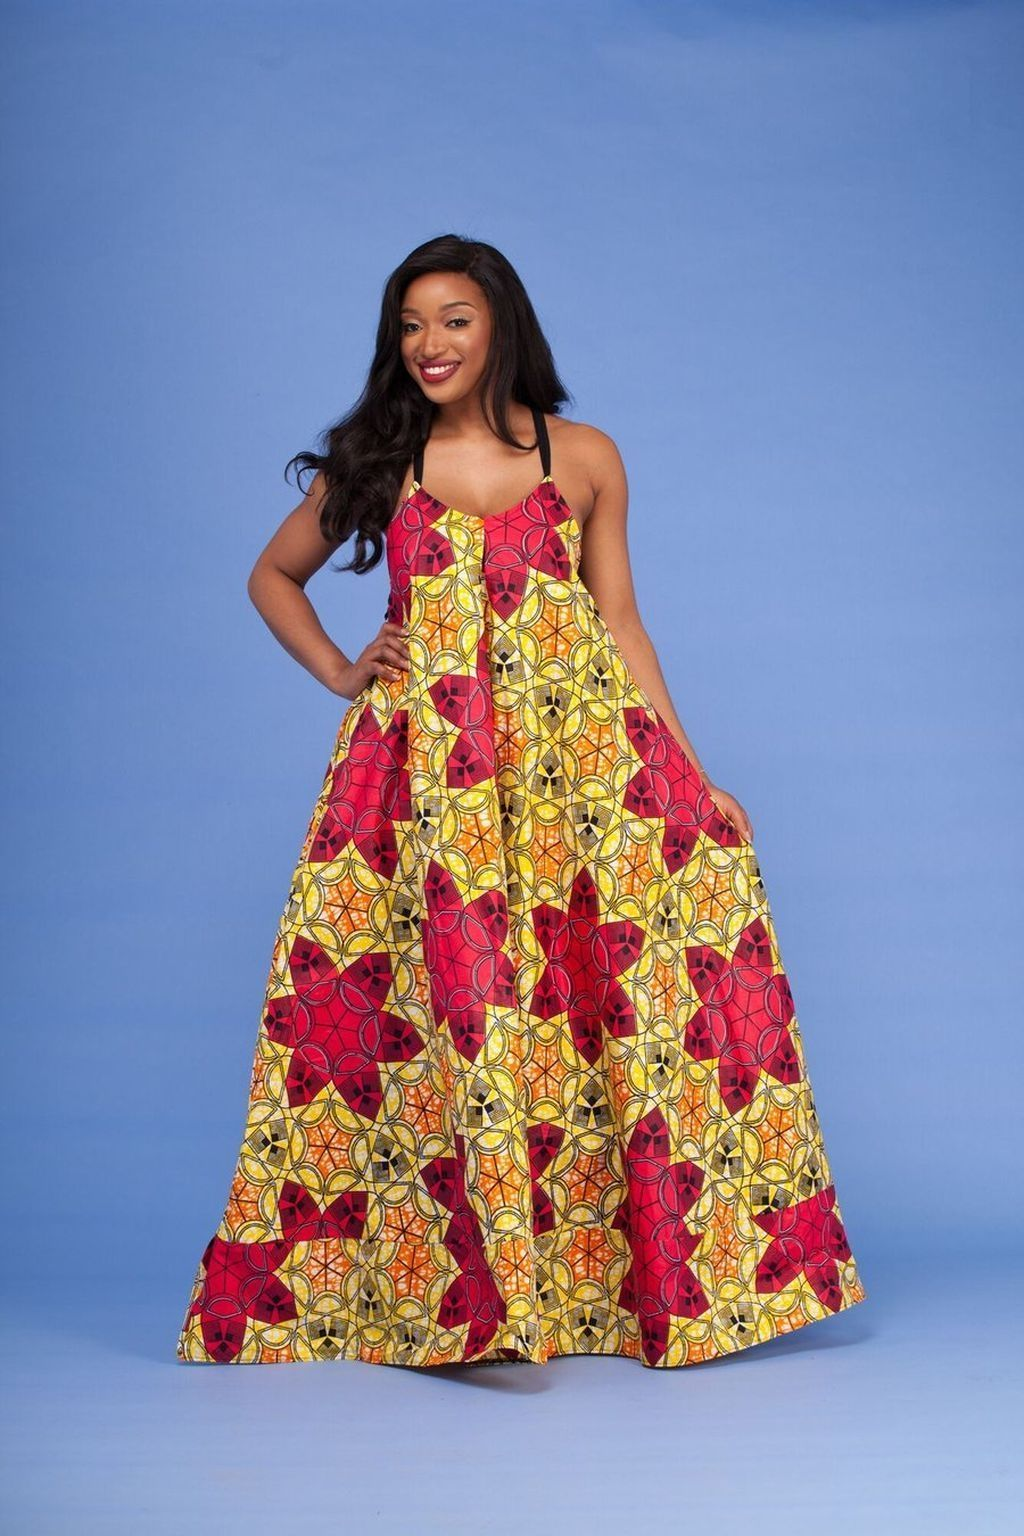 Awesome 44 Modern African Dresses Styles 2017 Http Lovellywedding Com 2017 12 13 44 Modern African Dresses St Ropa Africana Trajes Africanos Vestido Africano